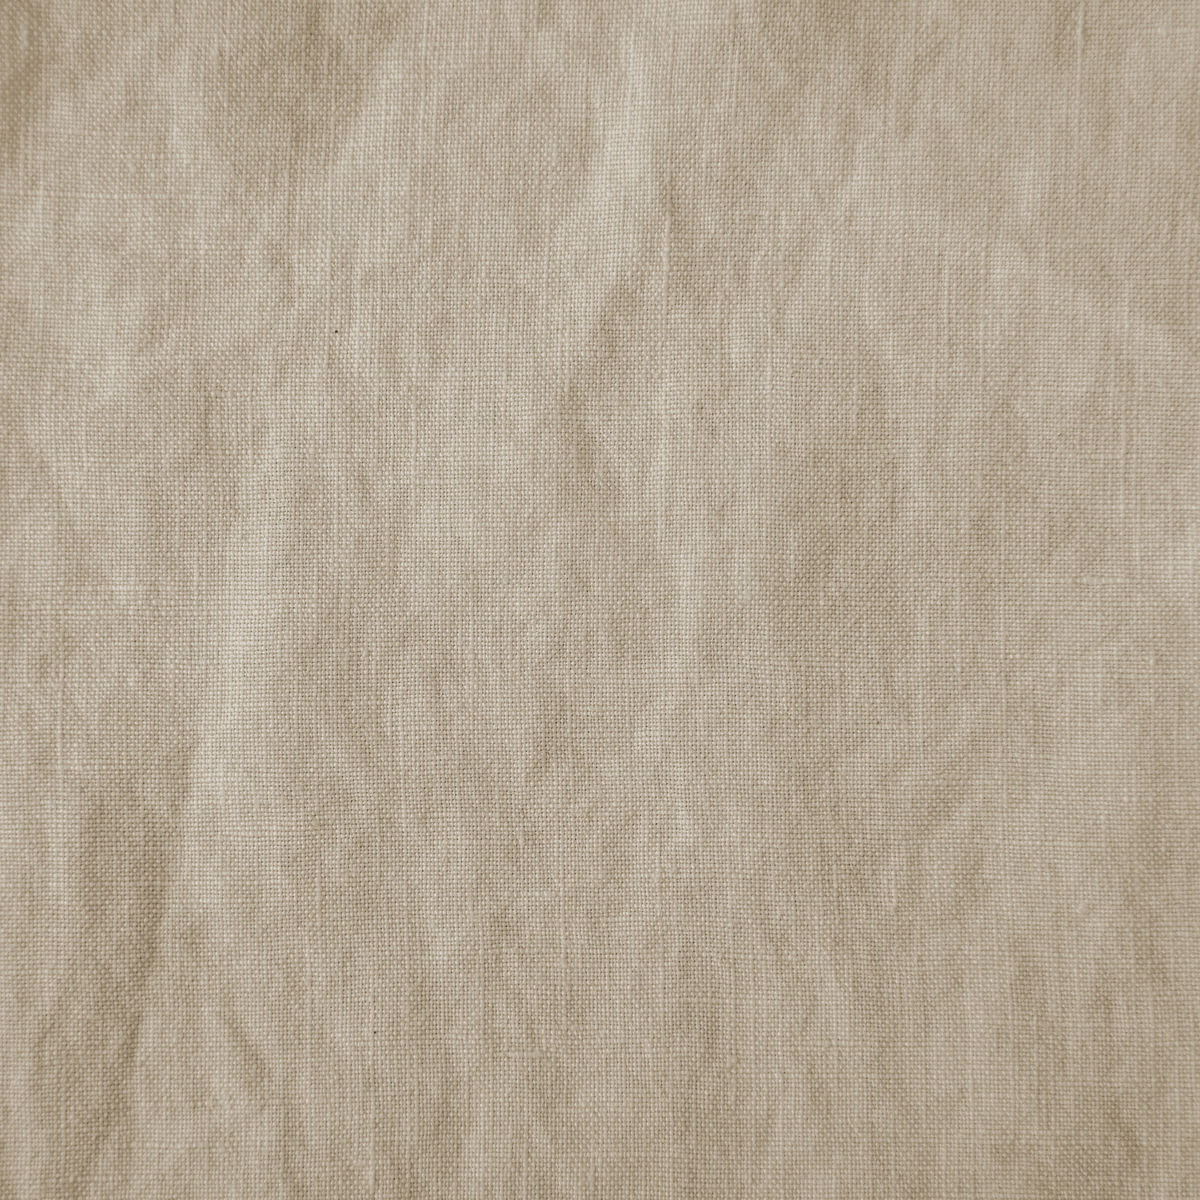 Linen Napkins Light Weight (set of 4) - product images  of